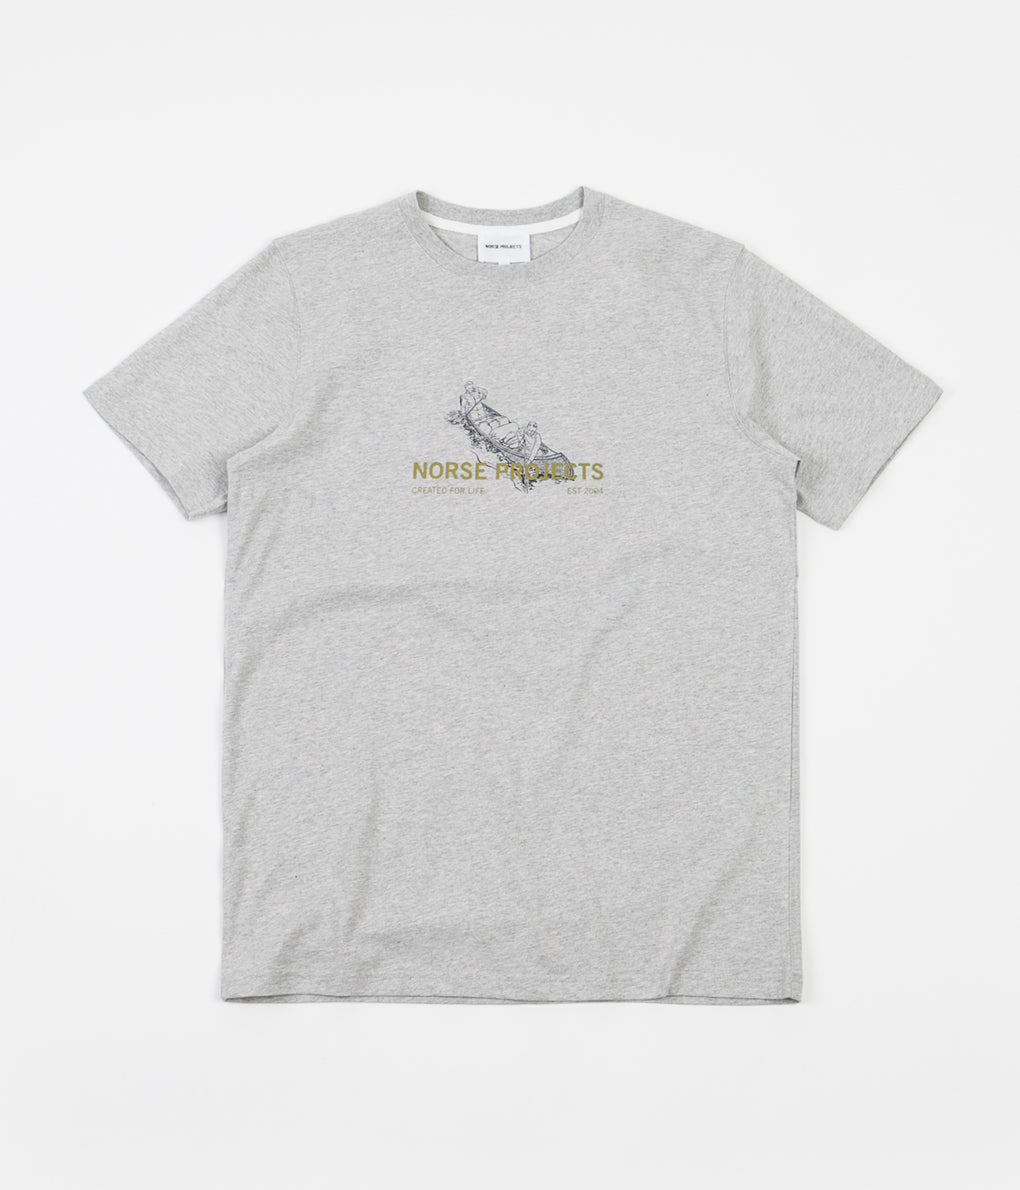 Norse Projects Niels Canoe Adventure T-Shirt - Light Grey Melange